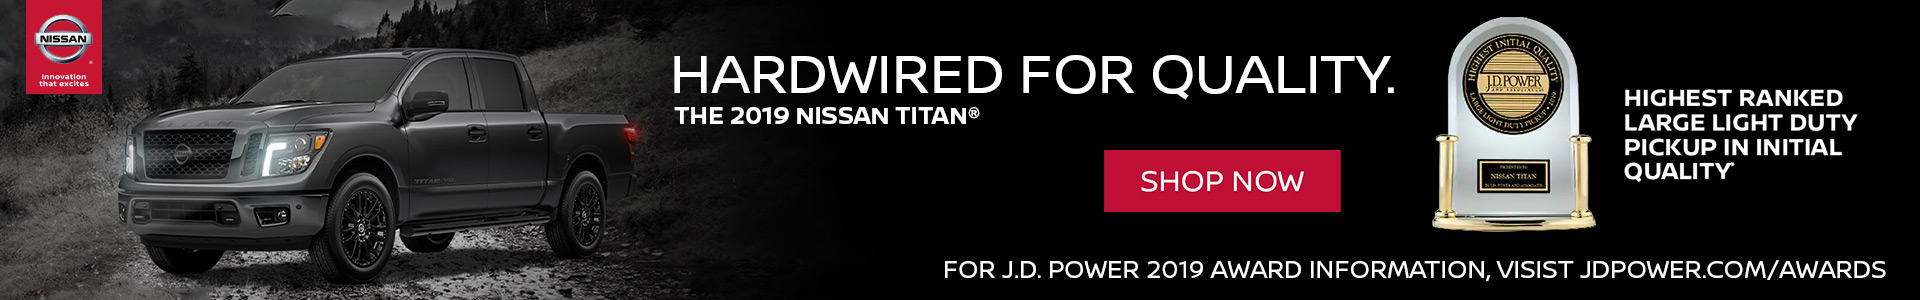 Nissan Titan JD Power Award